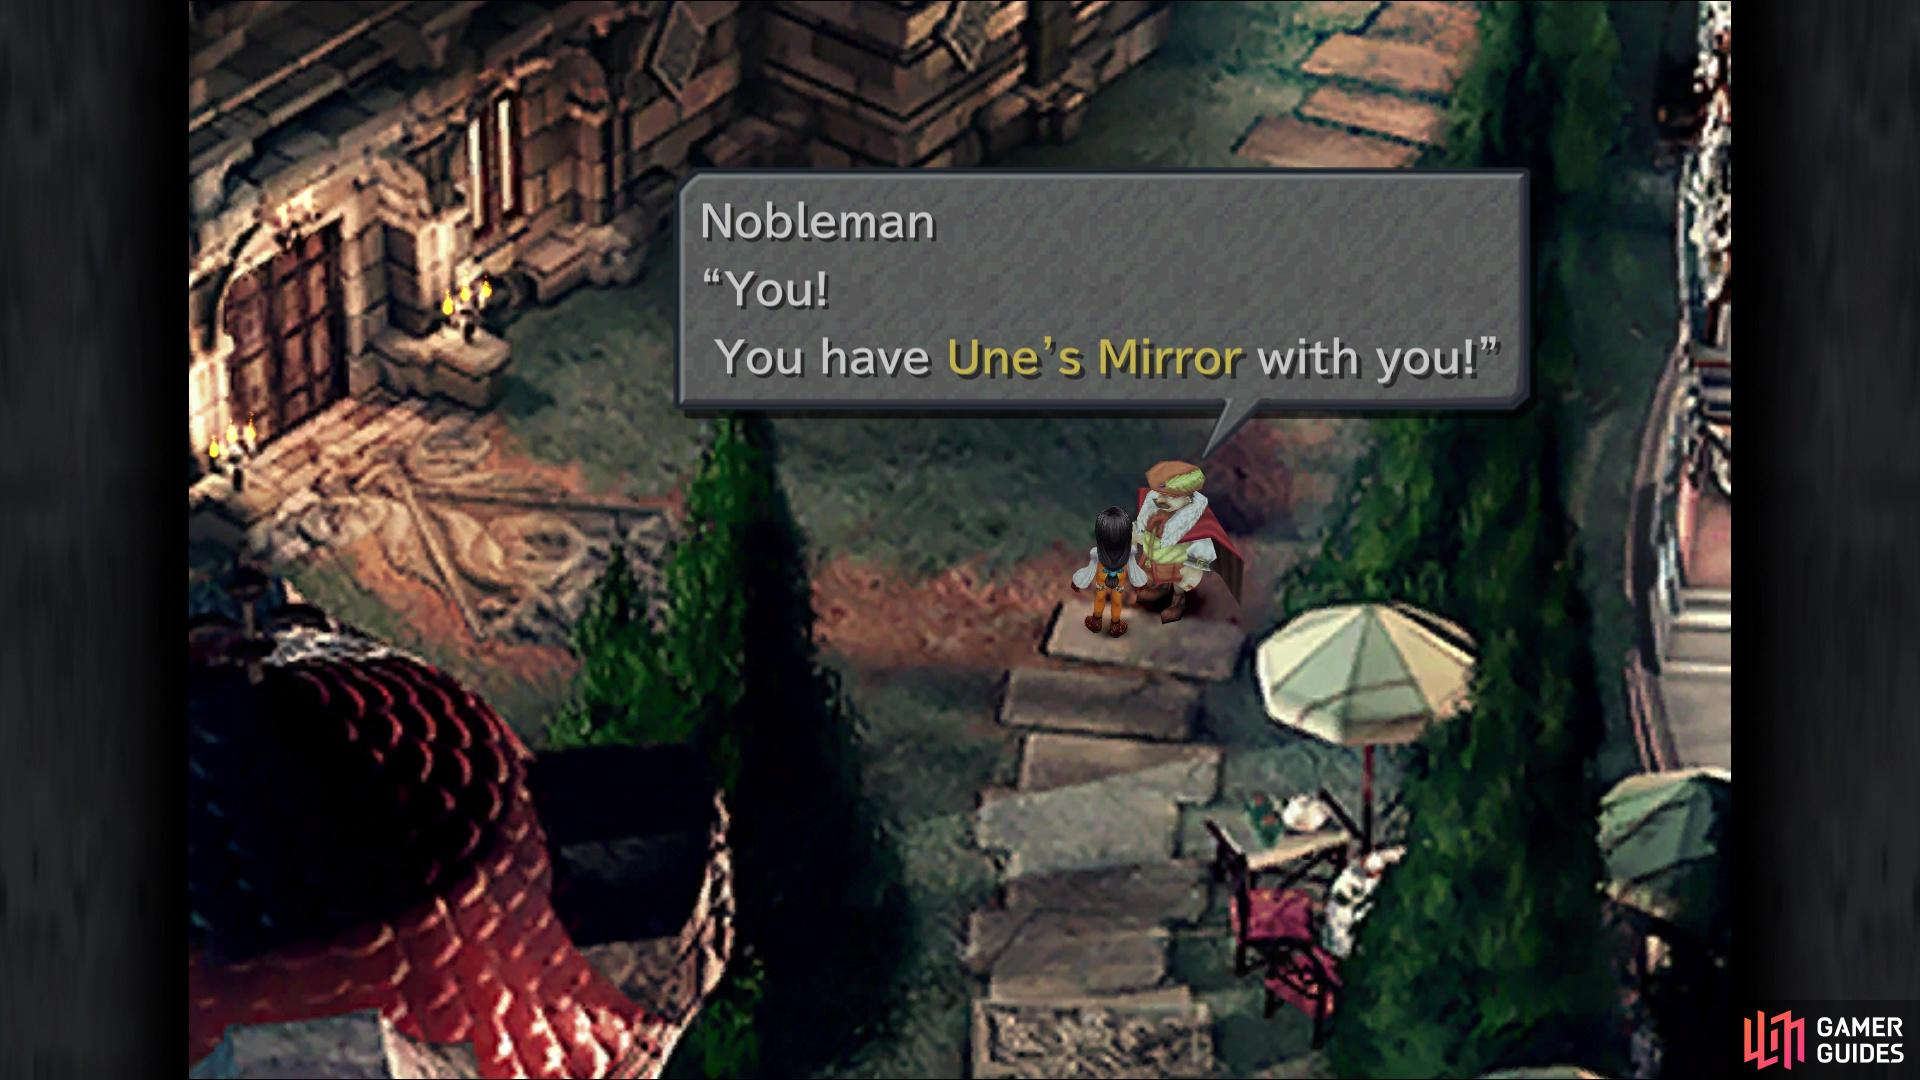 The Nobleman for the Une's Mirror is found walking through this area